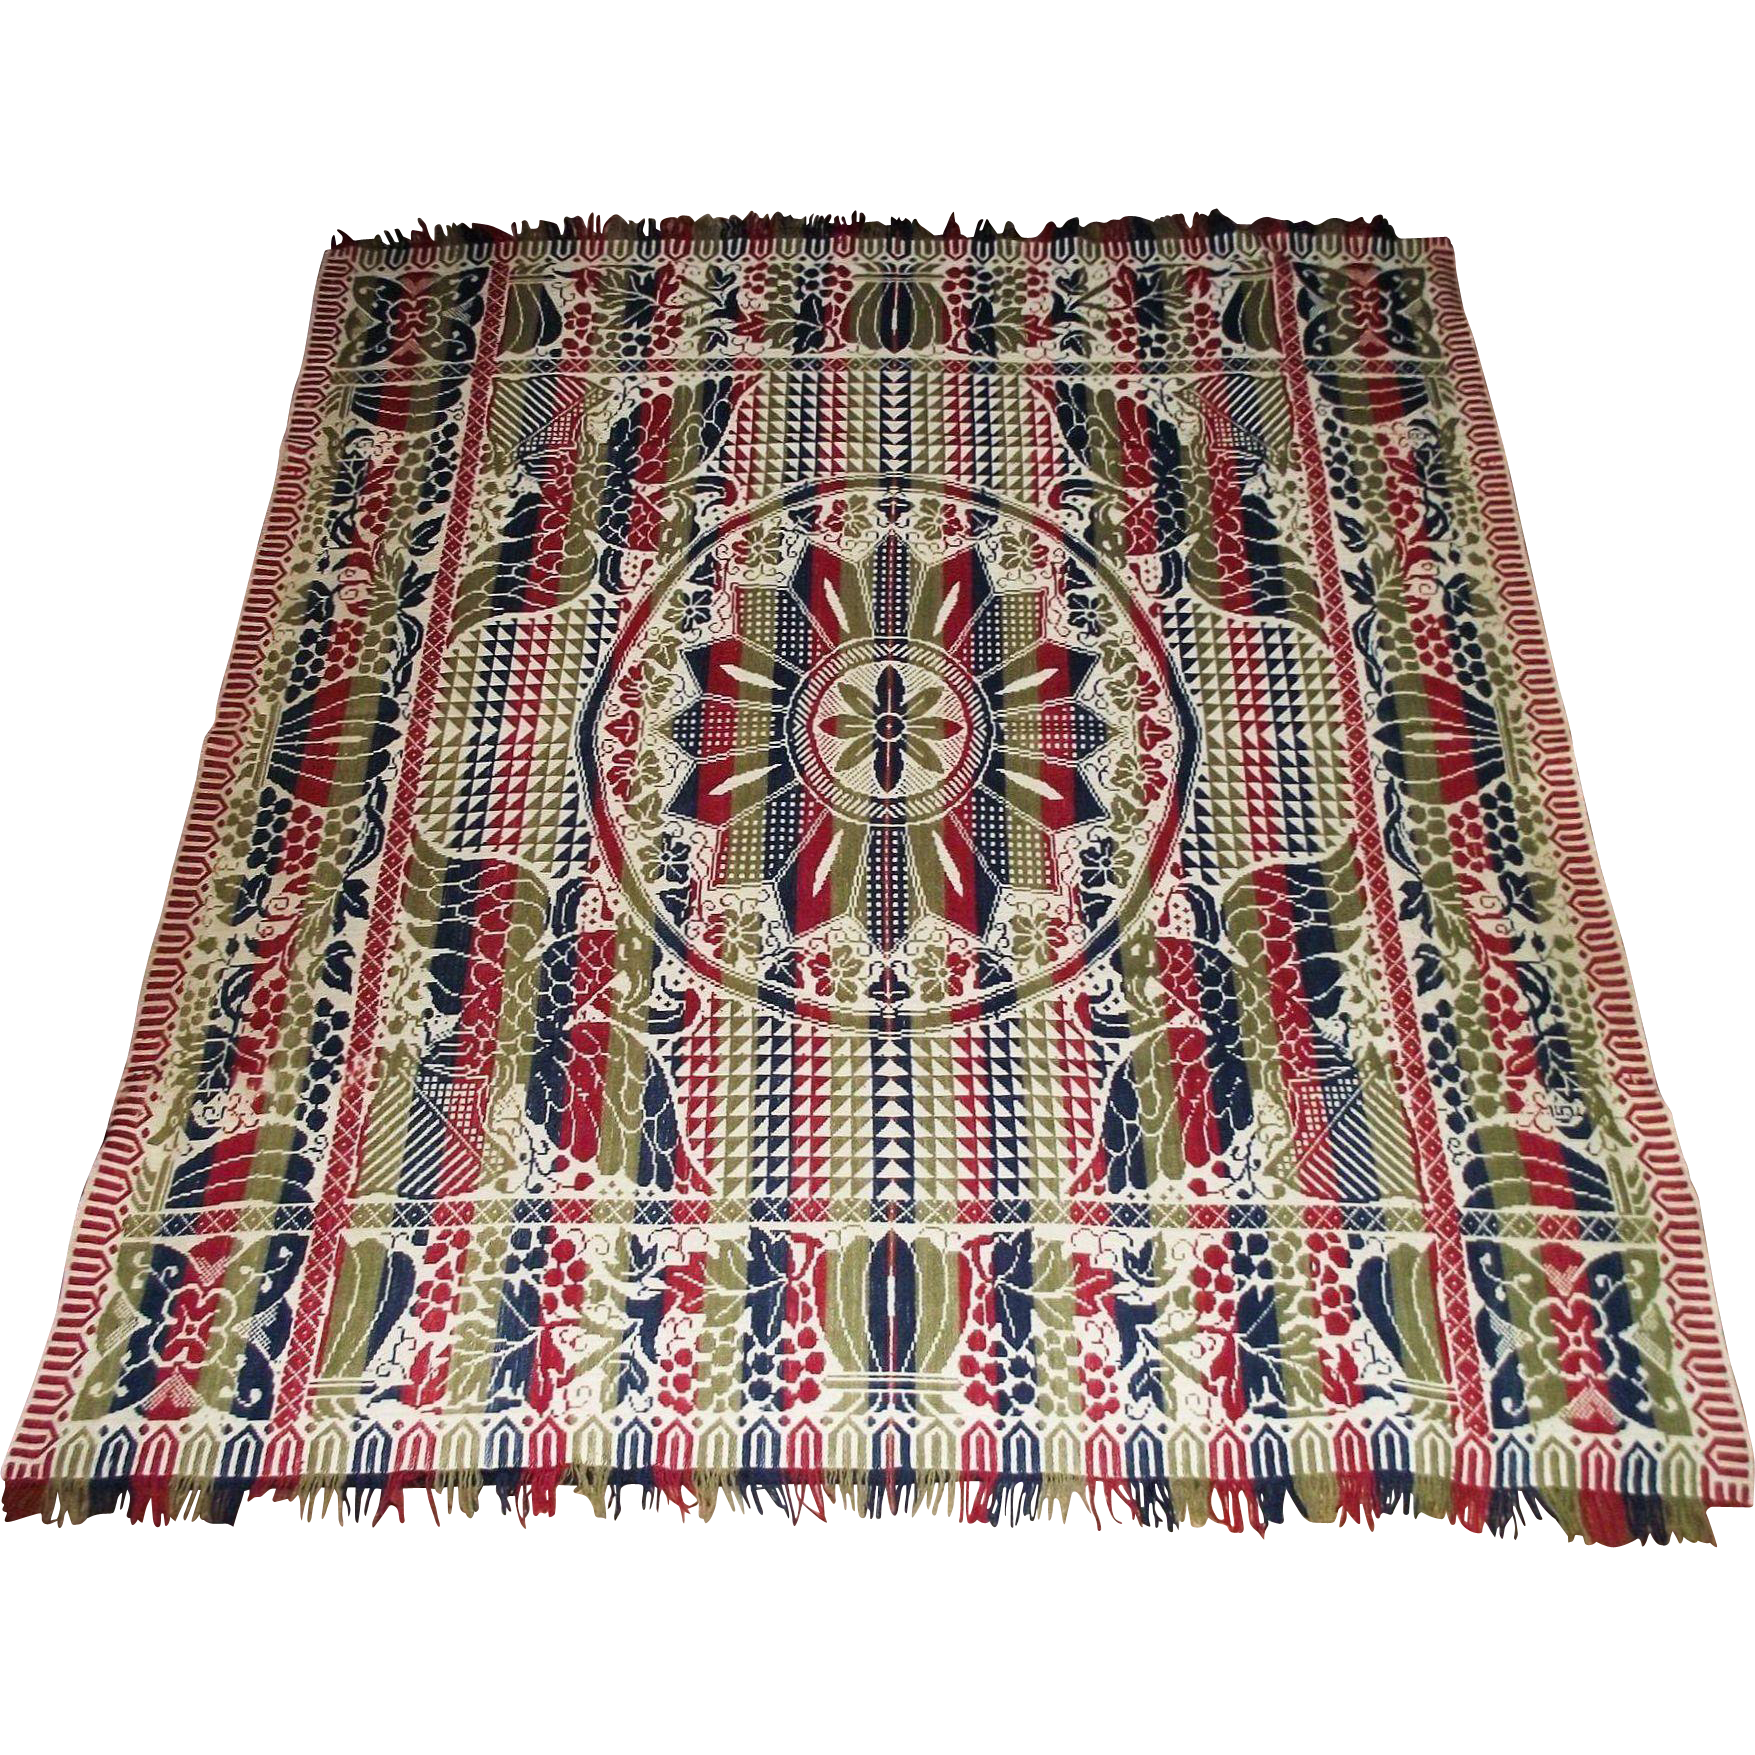 """""""Eagles & Shields"""" Coverlet in Red, White, Blue & Green woven Colors with Central """"Geometric Pinwheel""""  !!! Circa 1870."""